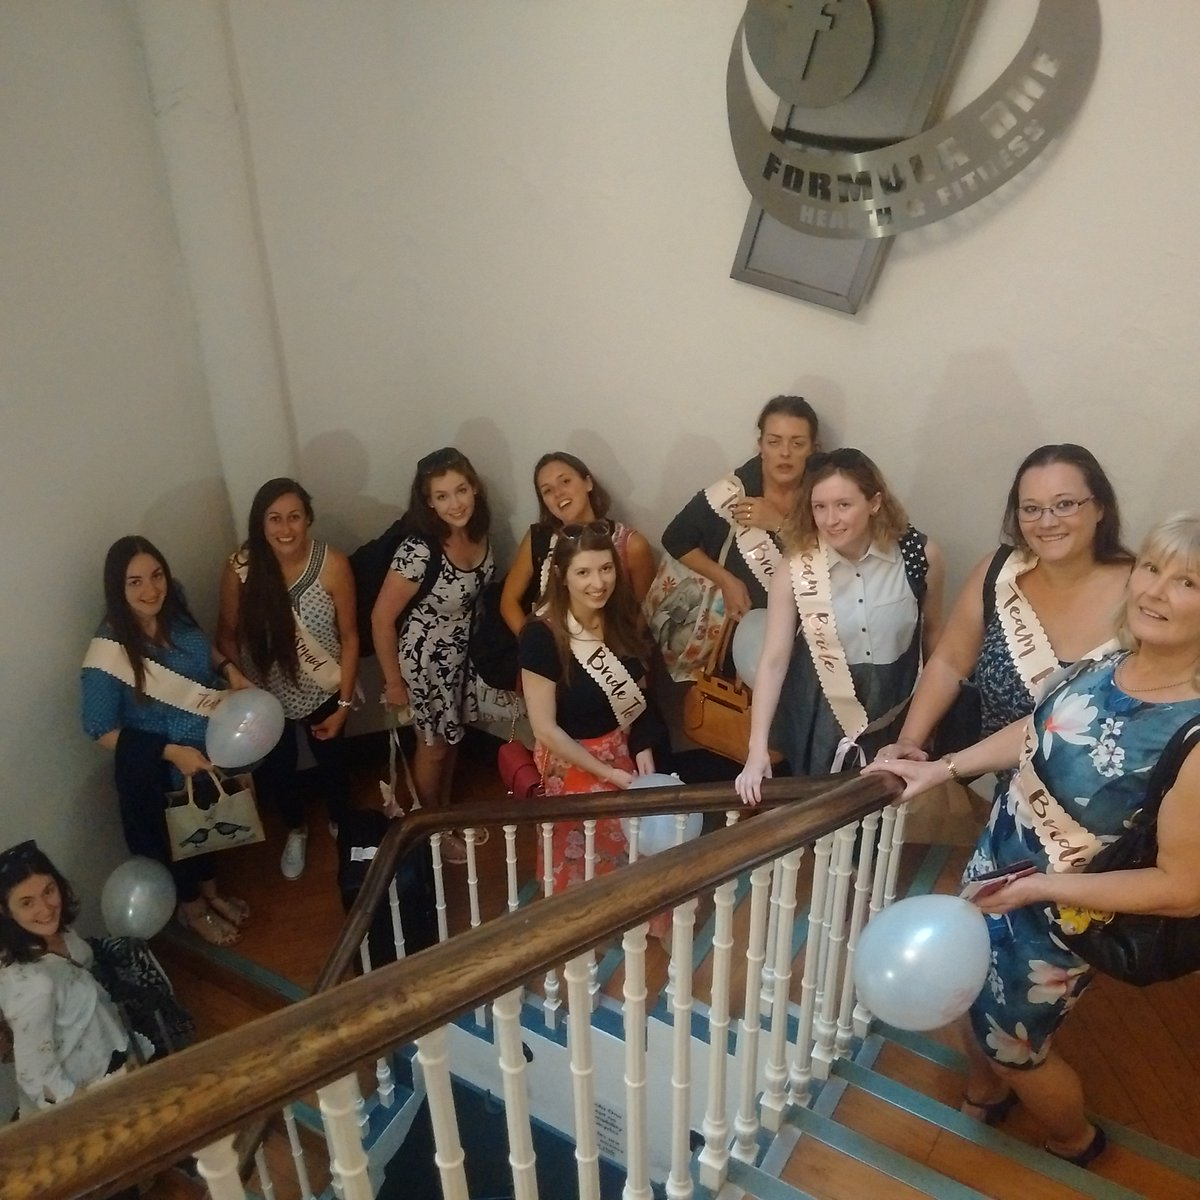 #Fame#henparty #Nottingham #cheercohens Congratulations Danielle #lovecheerco @DanielleMachin @CheerleadingCopic.twitter.com/bYQwhUhKop